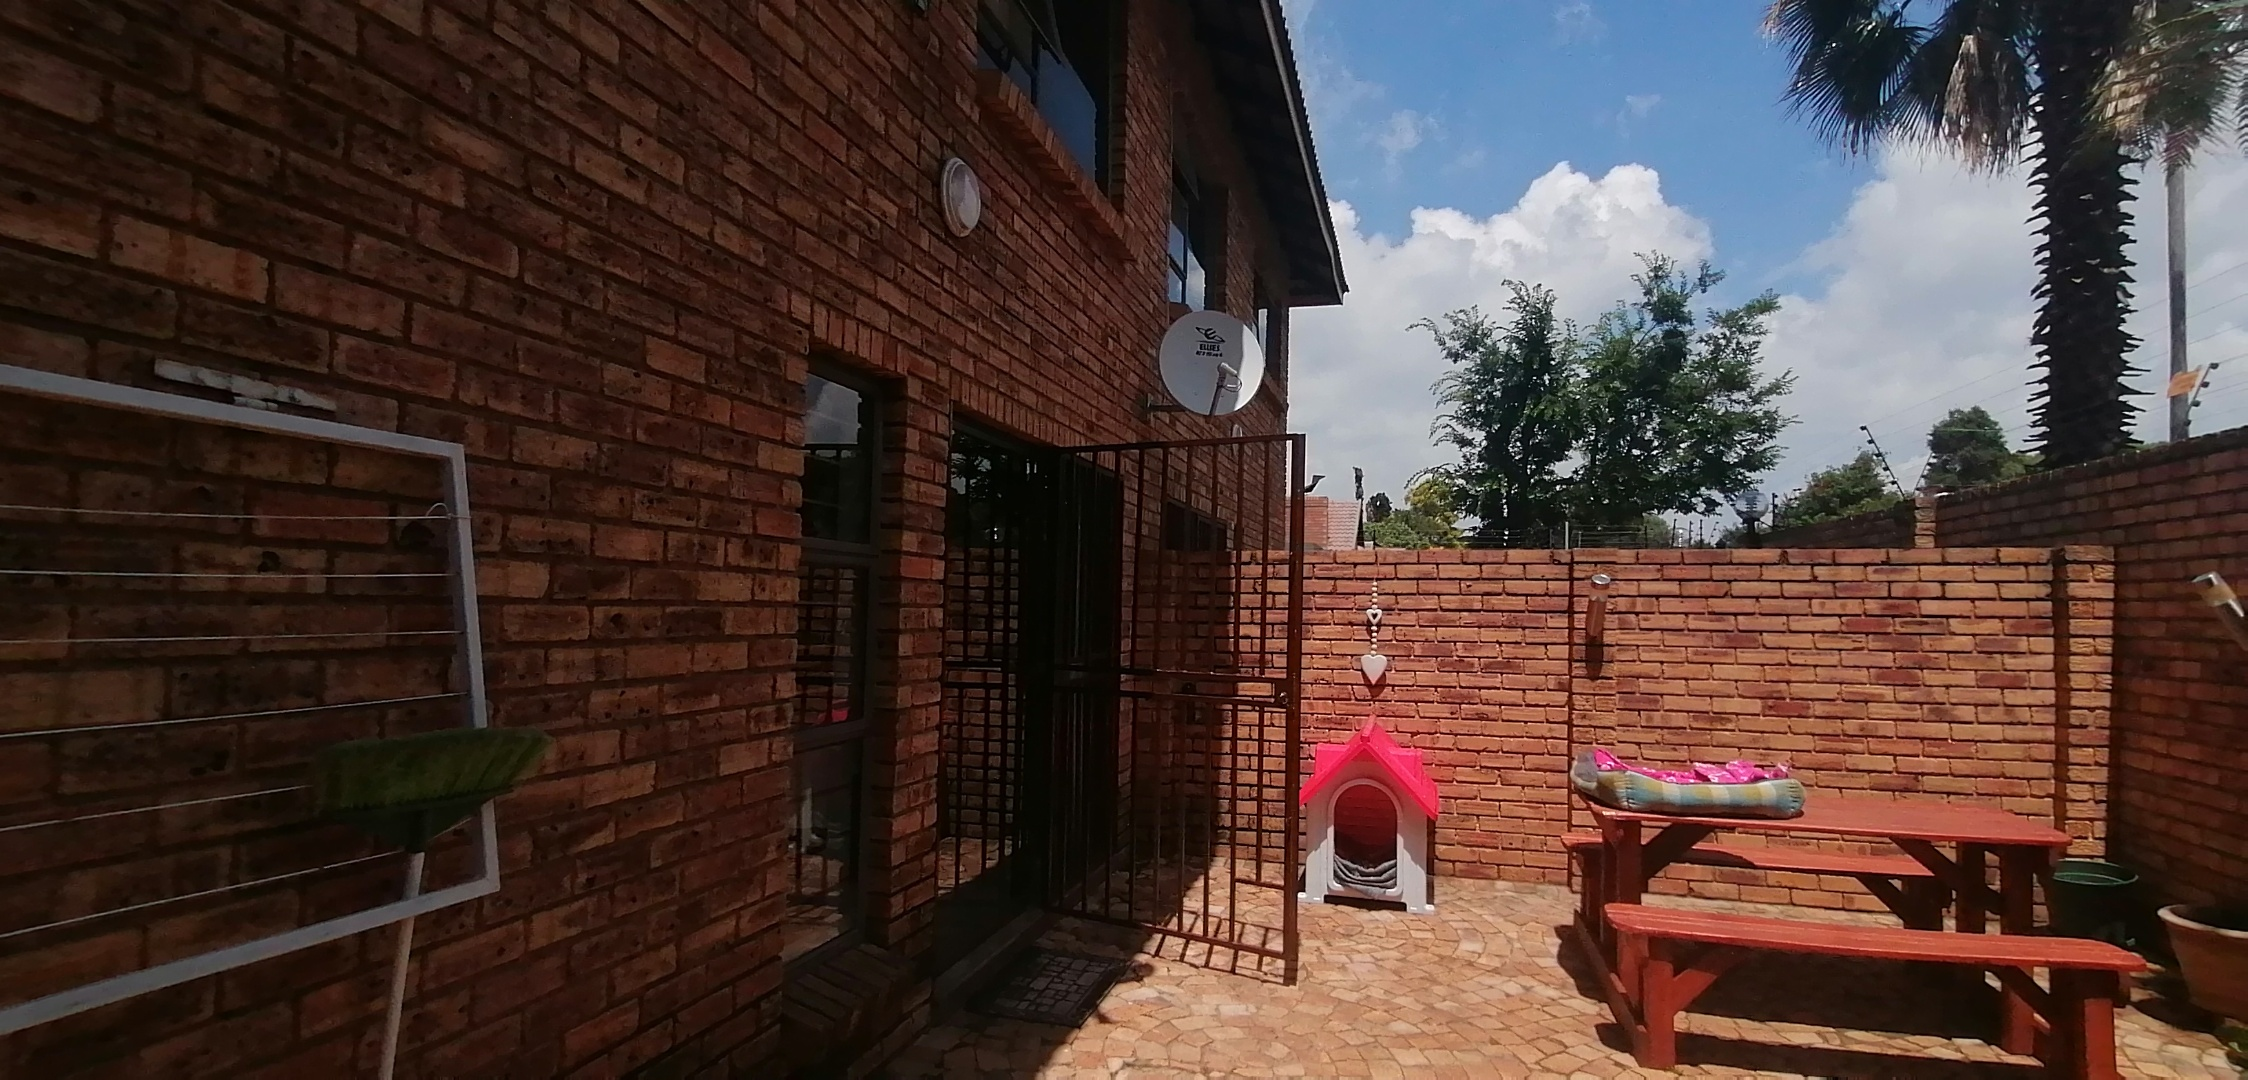 2 Bedroom Townhouse For Sale in Brackenhurst